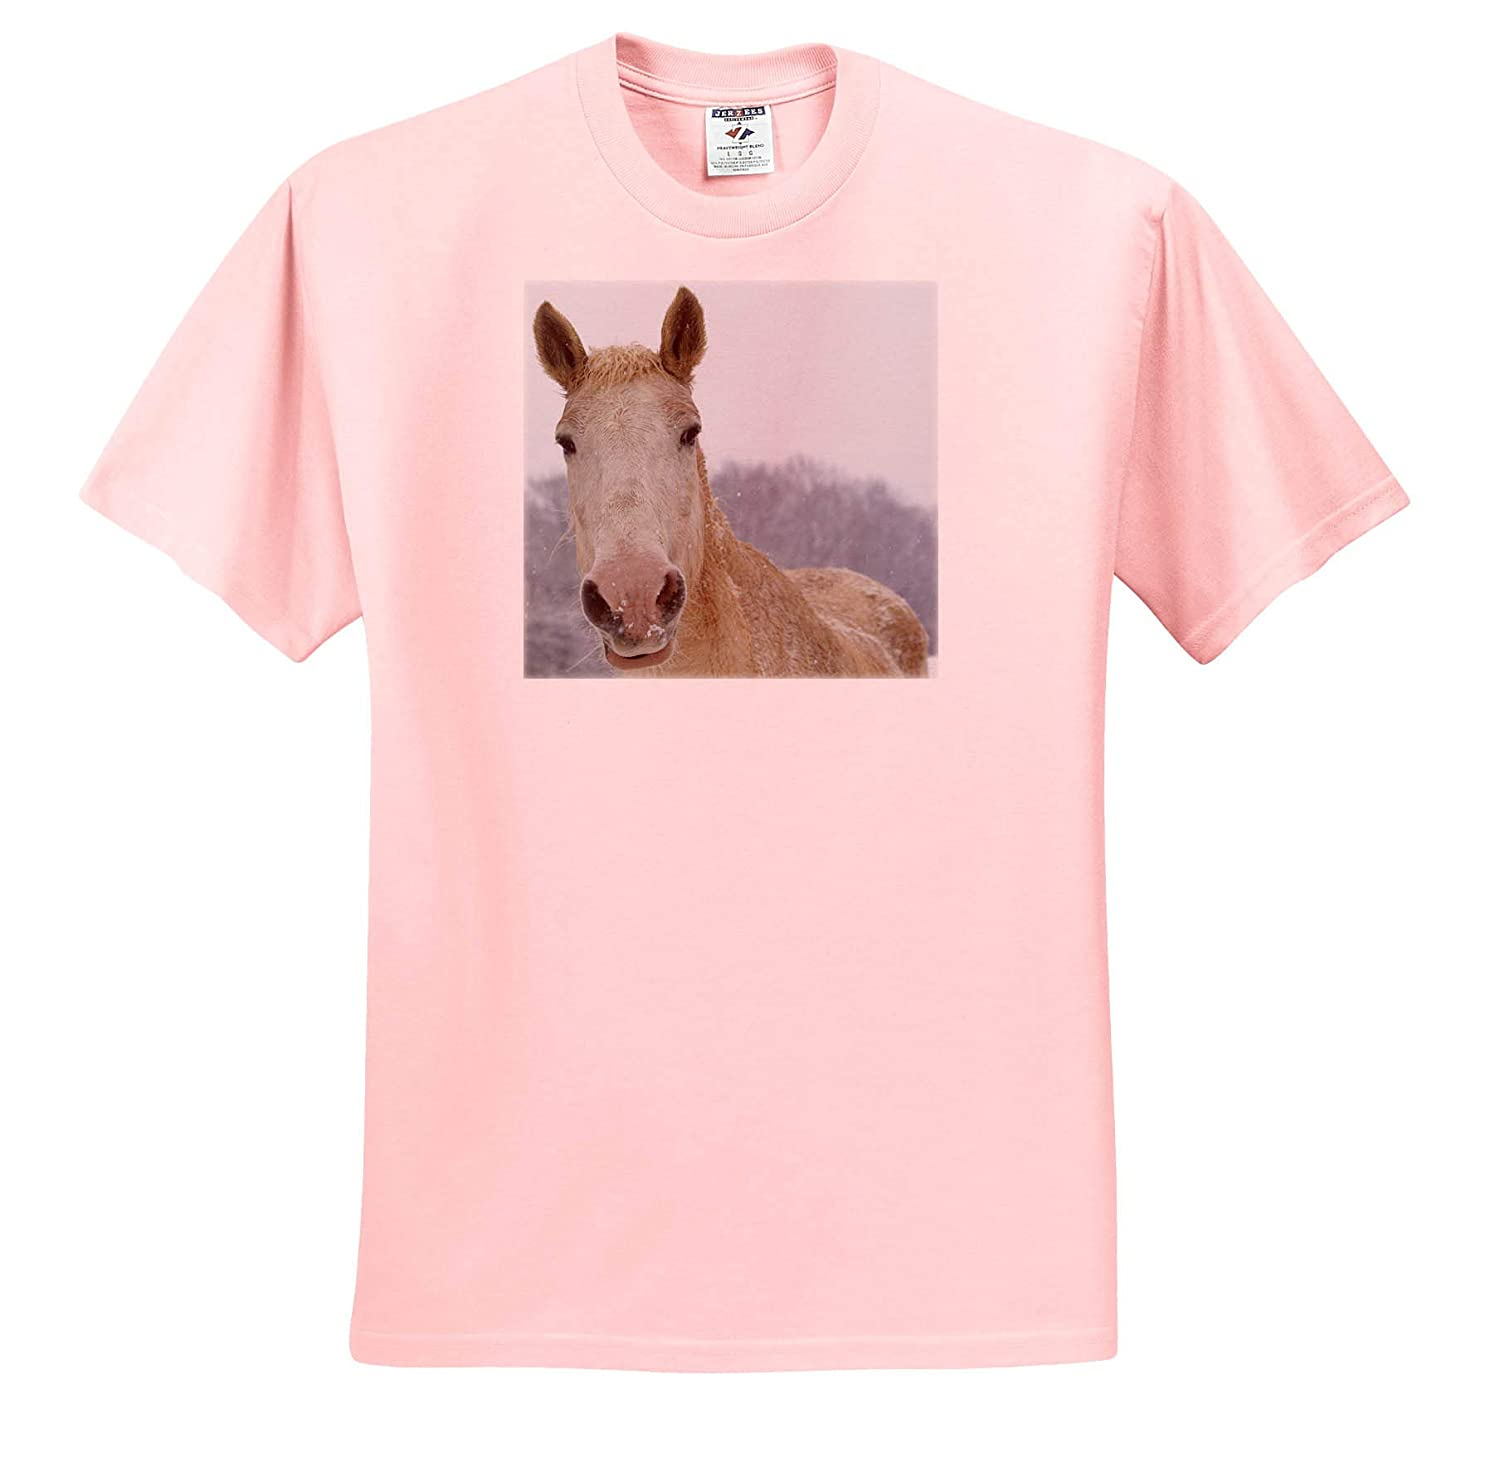 - T-Shirts 3dRose Stamp City Animals Close-up Photograph of a White Horse Enjoying The Winter Snow